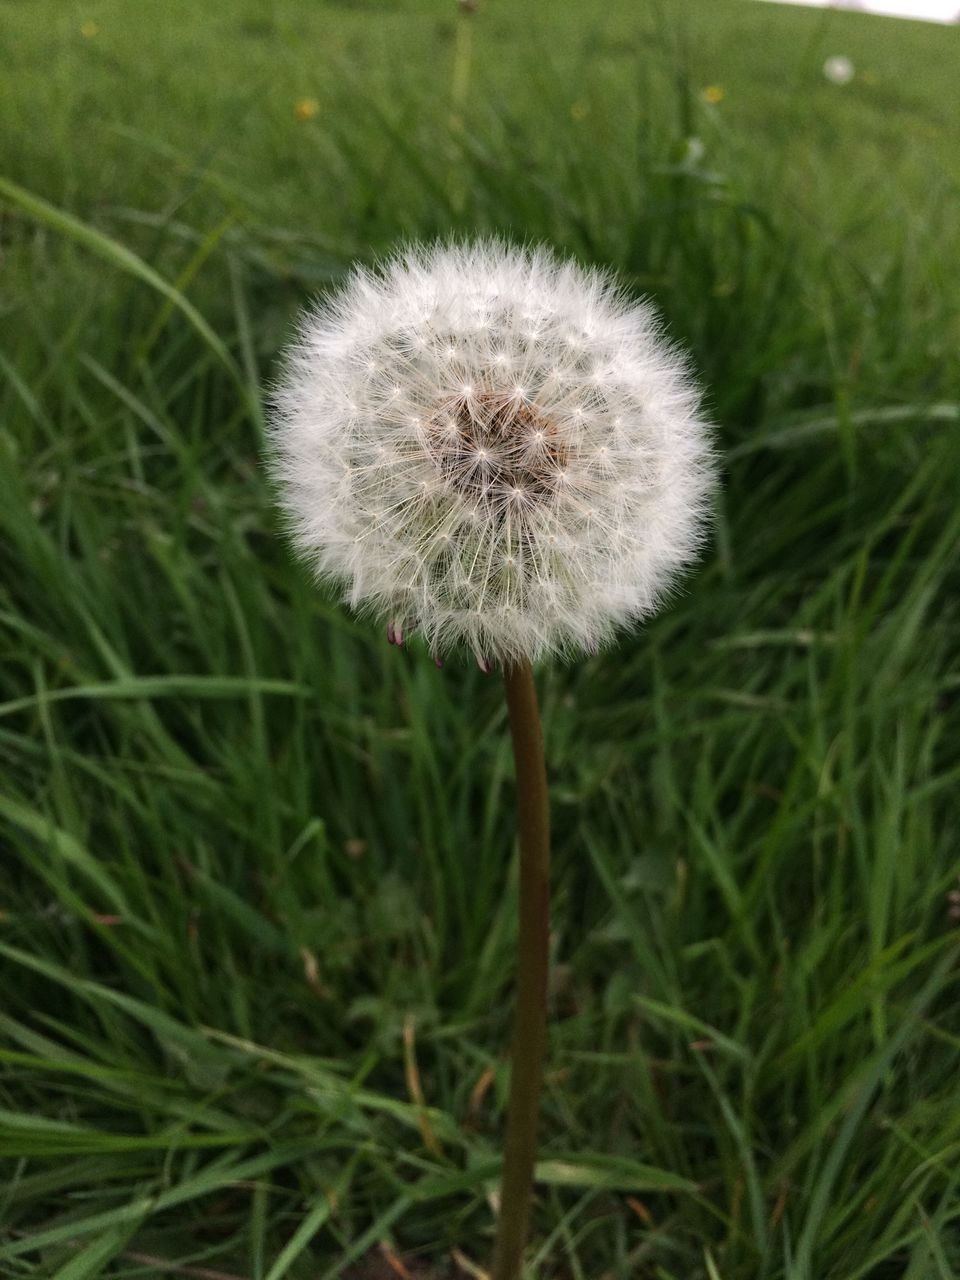 growth, flower, dandelion, nature, fragility, softness, grass, plant, beauty in nature, freshness, uncultivated, close-up, flower head, outdoors, no people, day